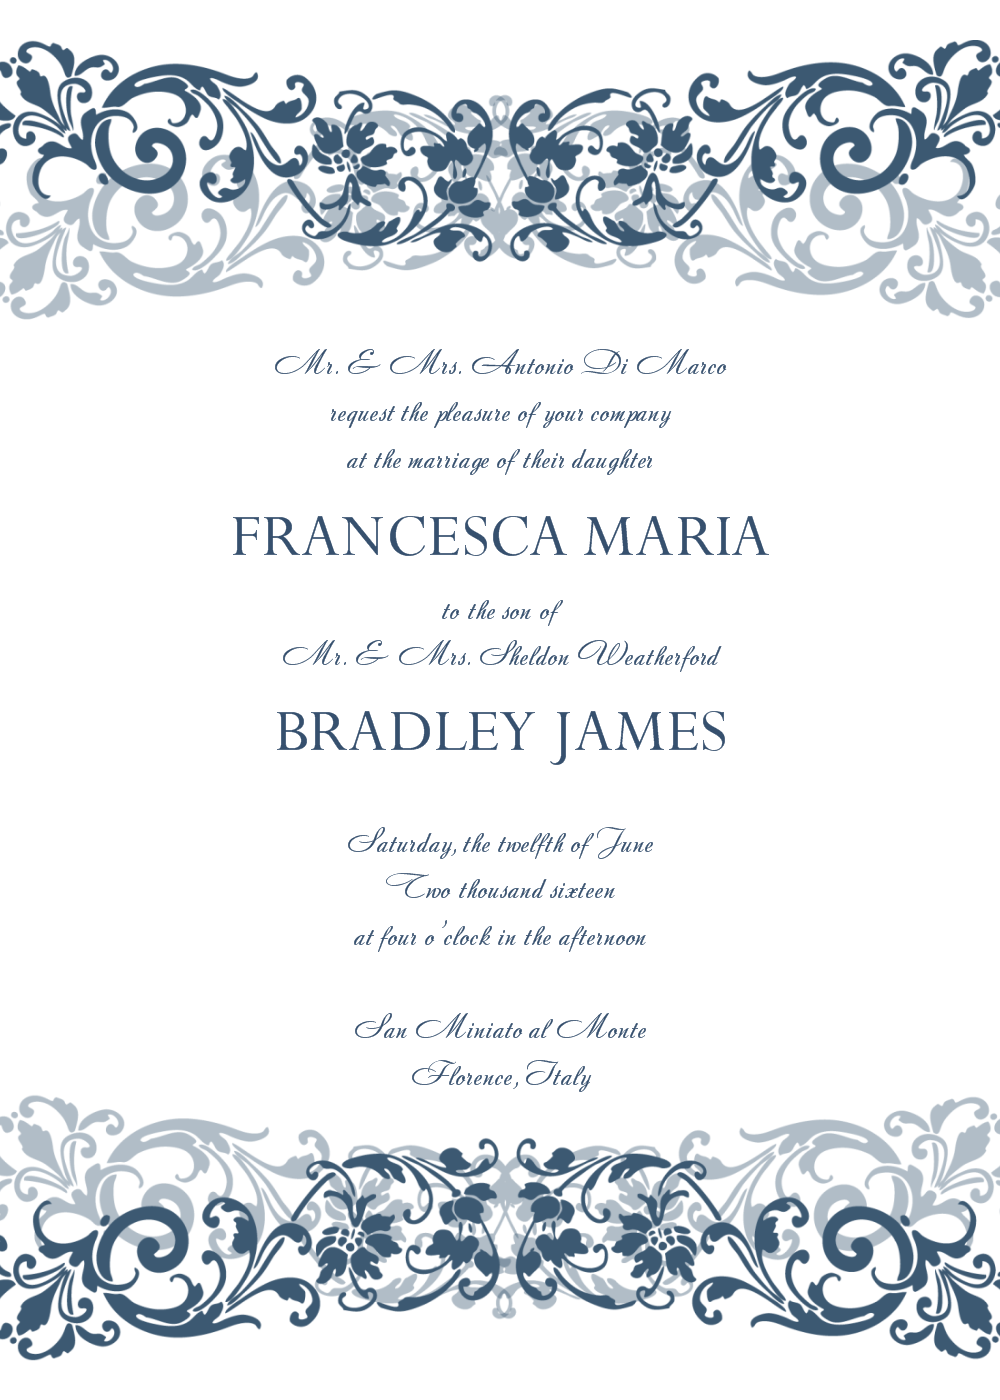 30 Free Wedding Invitations Templates – Free Printable Blank Wedding Invitation Templates